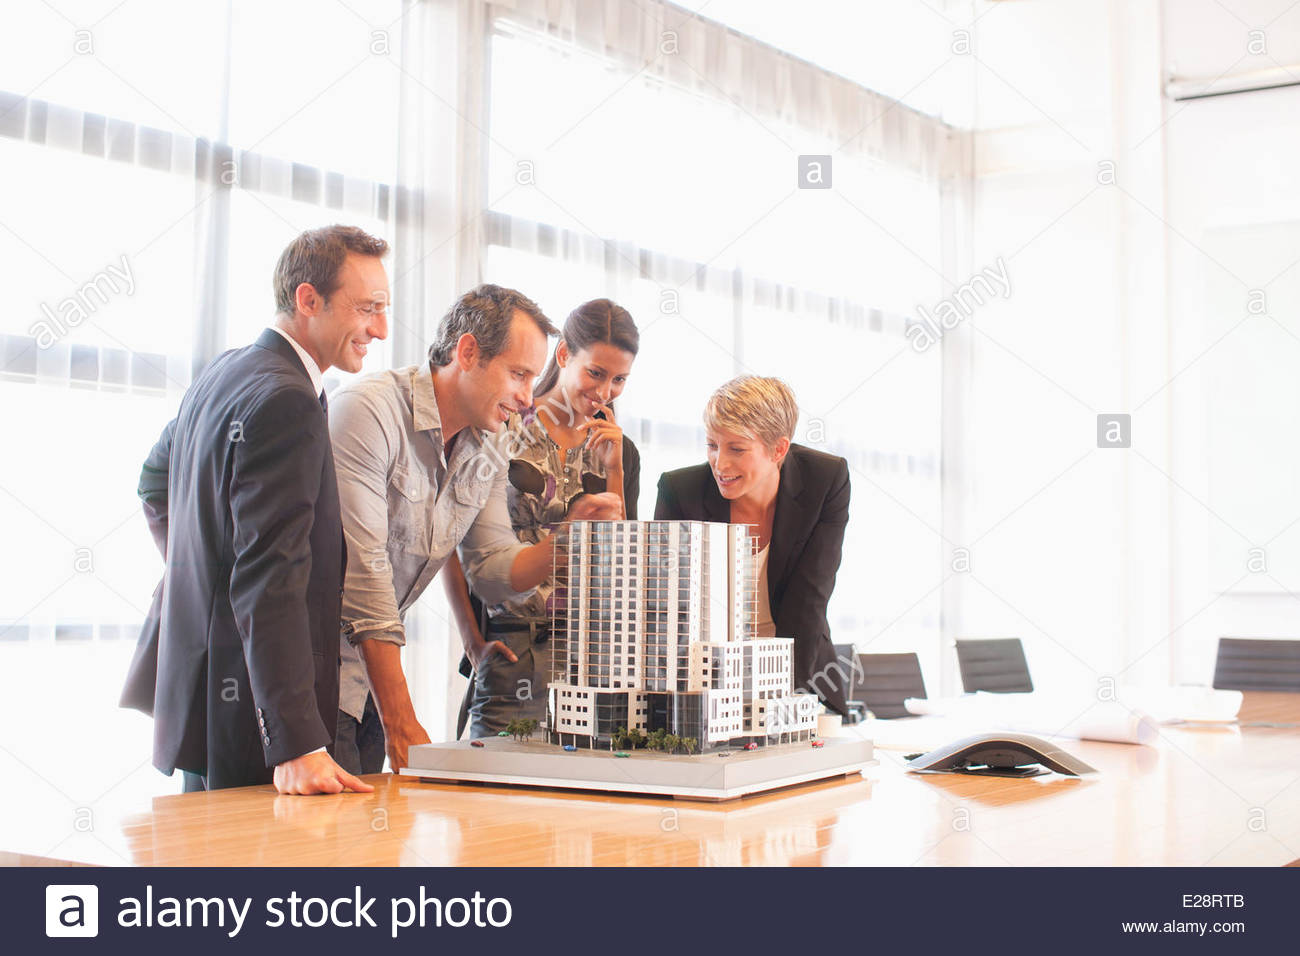 Business people looking at model building in conference room Stock Photo